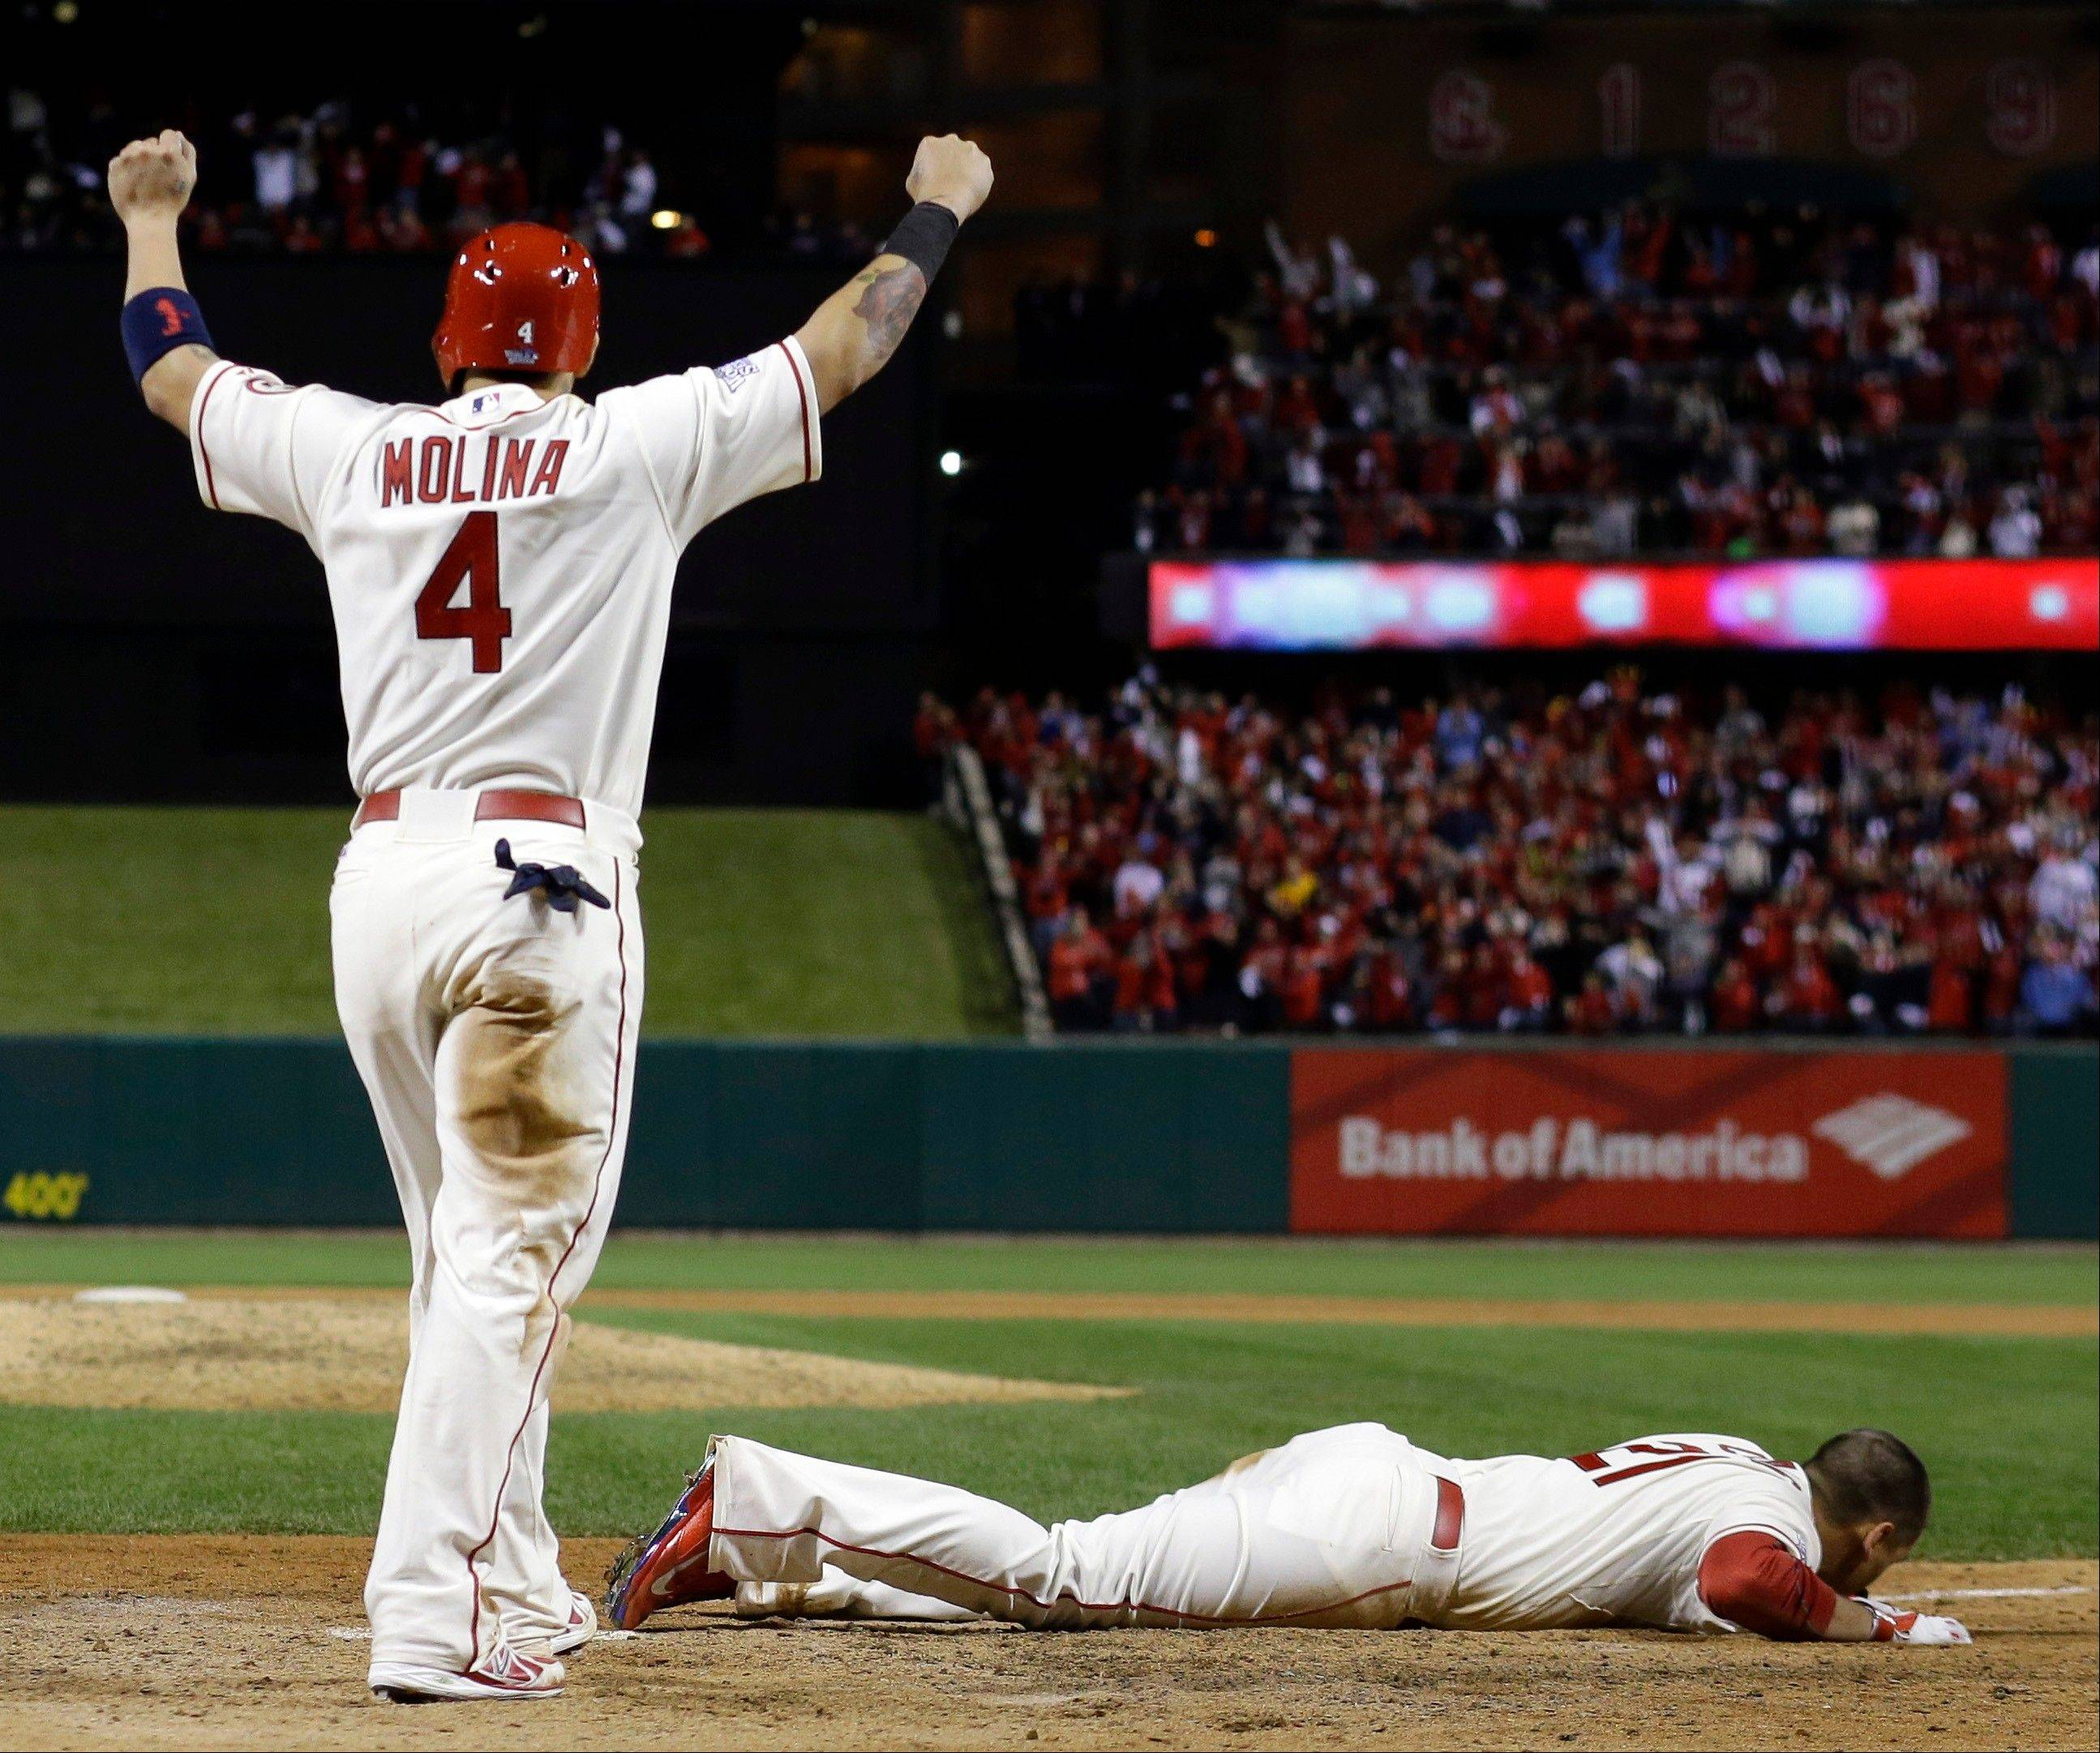 St. Louis Cardinals' Yadier Molina reacts as Allen Craig lies on home plate after getting tangled with Boston Red Sox's Will Middlebrooks during the ninth inning.